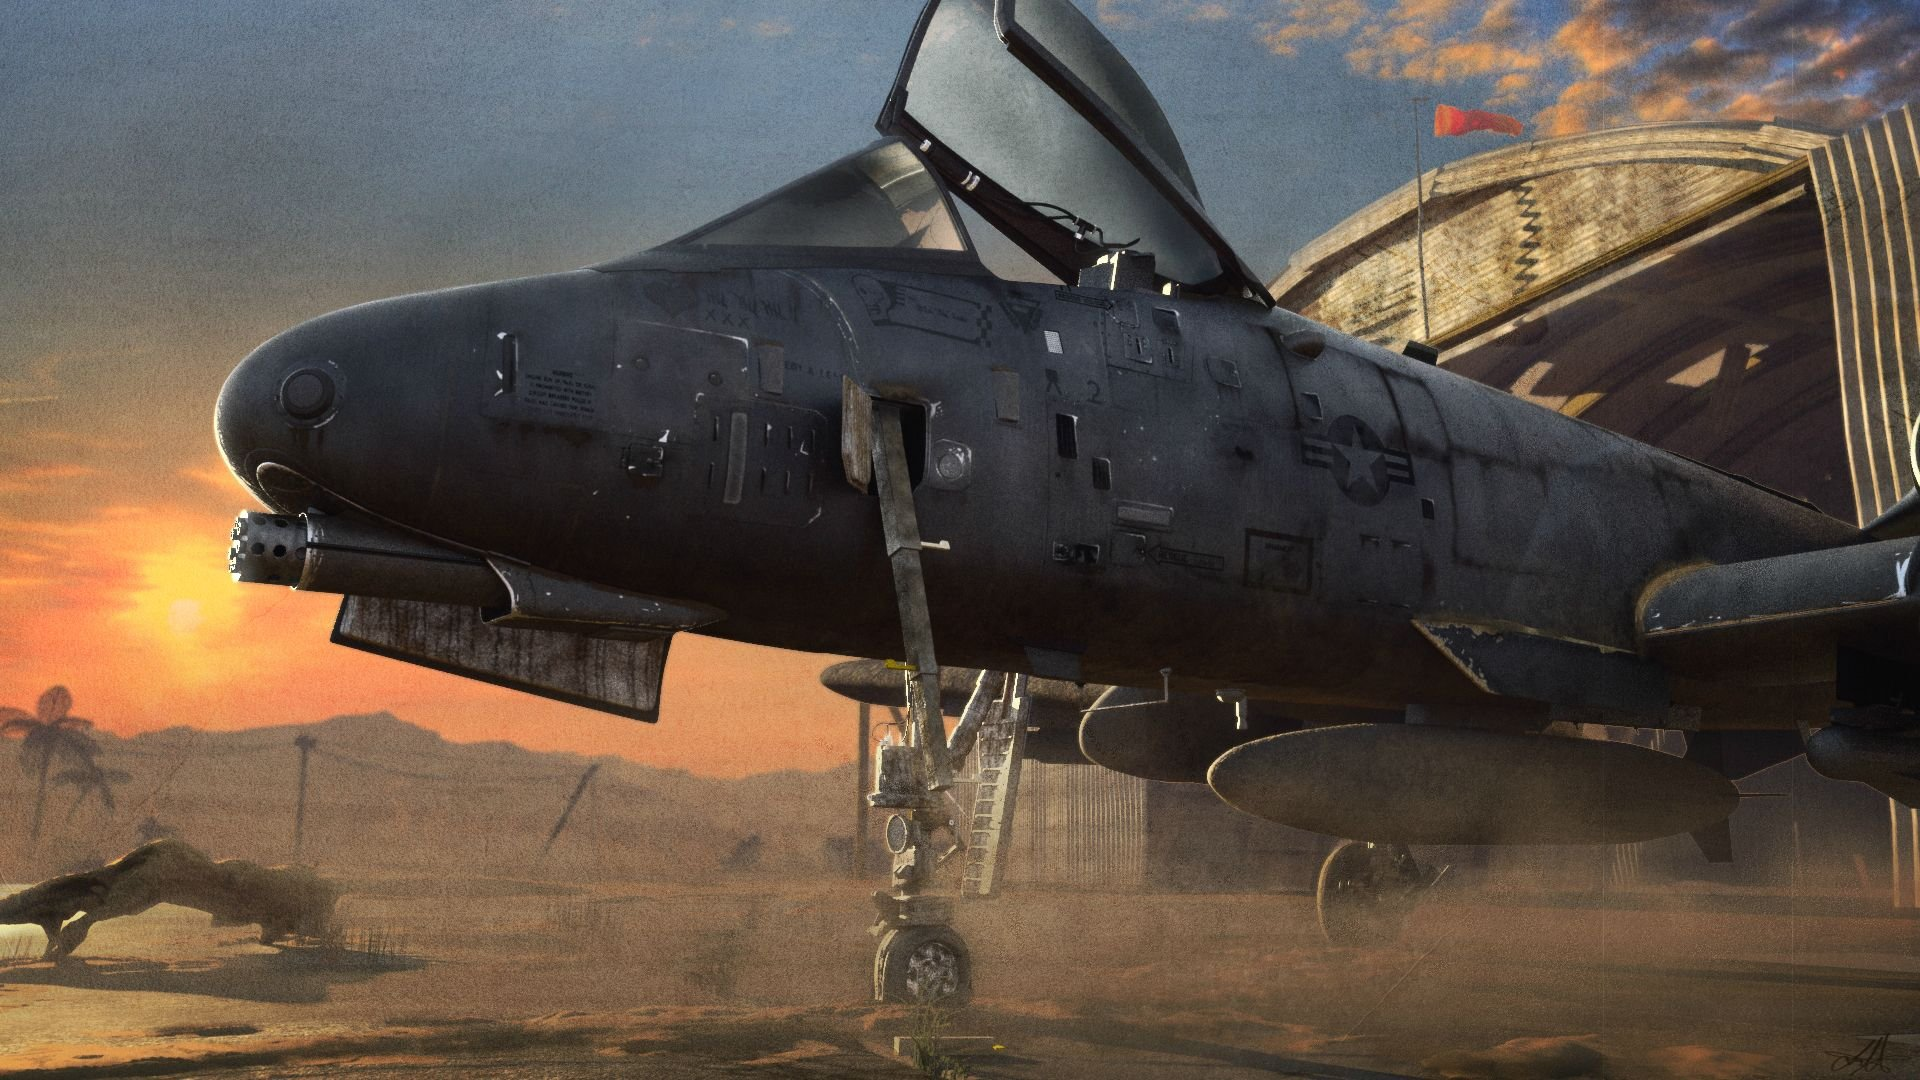 ... military airplane plane thunderbolt warthog (49) wallpaper background